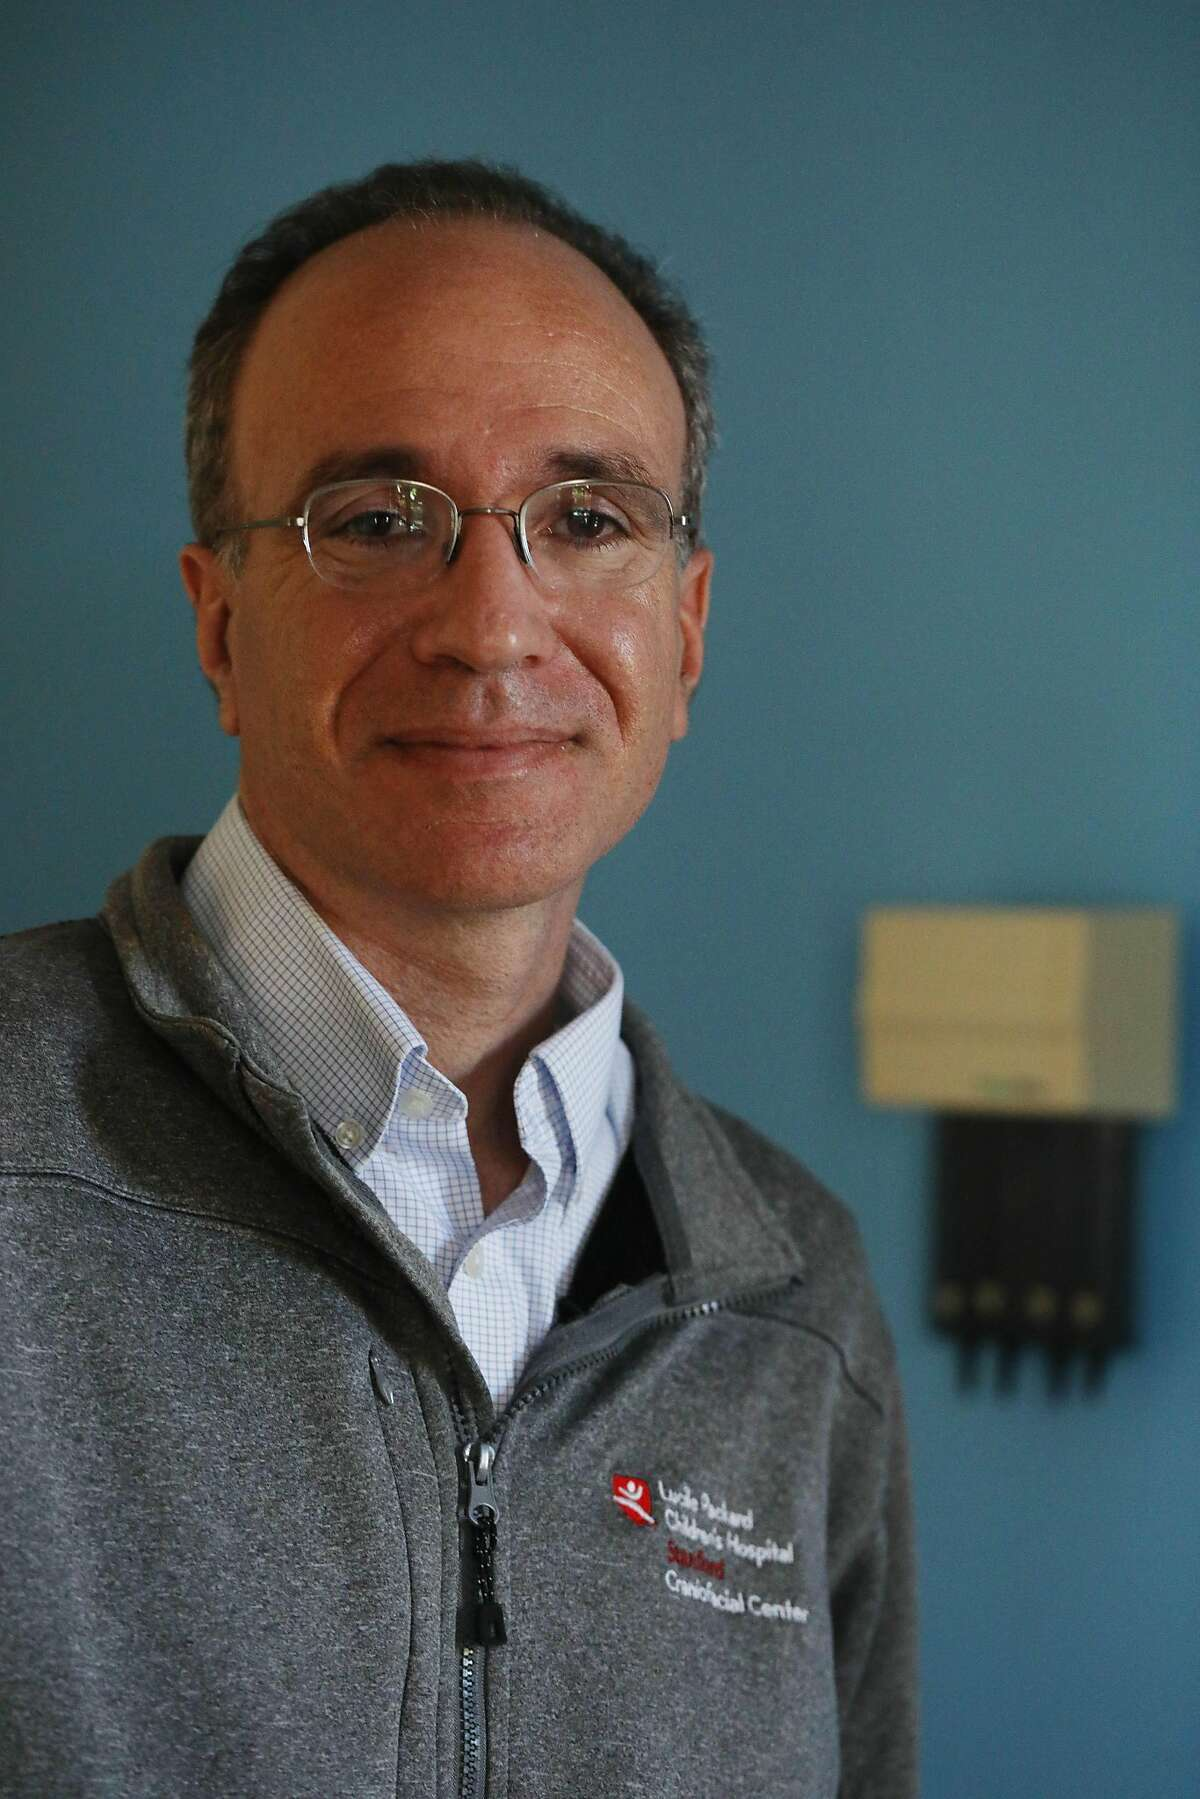 Dr. Jon Bernstein, pediatric medical director for Stanford Center for Undiasgnosed Disease, stands for a portrait at Luciele Packard Children's Hospital Outpatient Clinic on Wednesday, October 10, 2018 in Stanford.